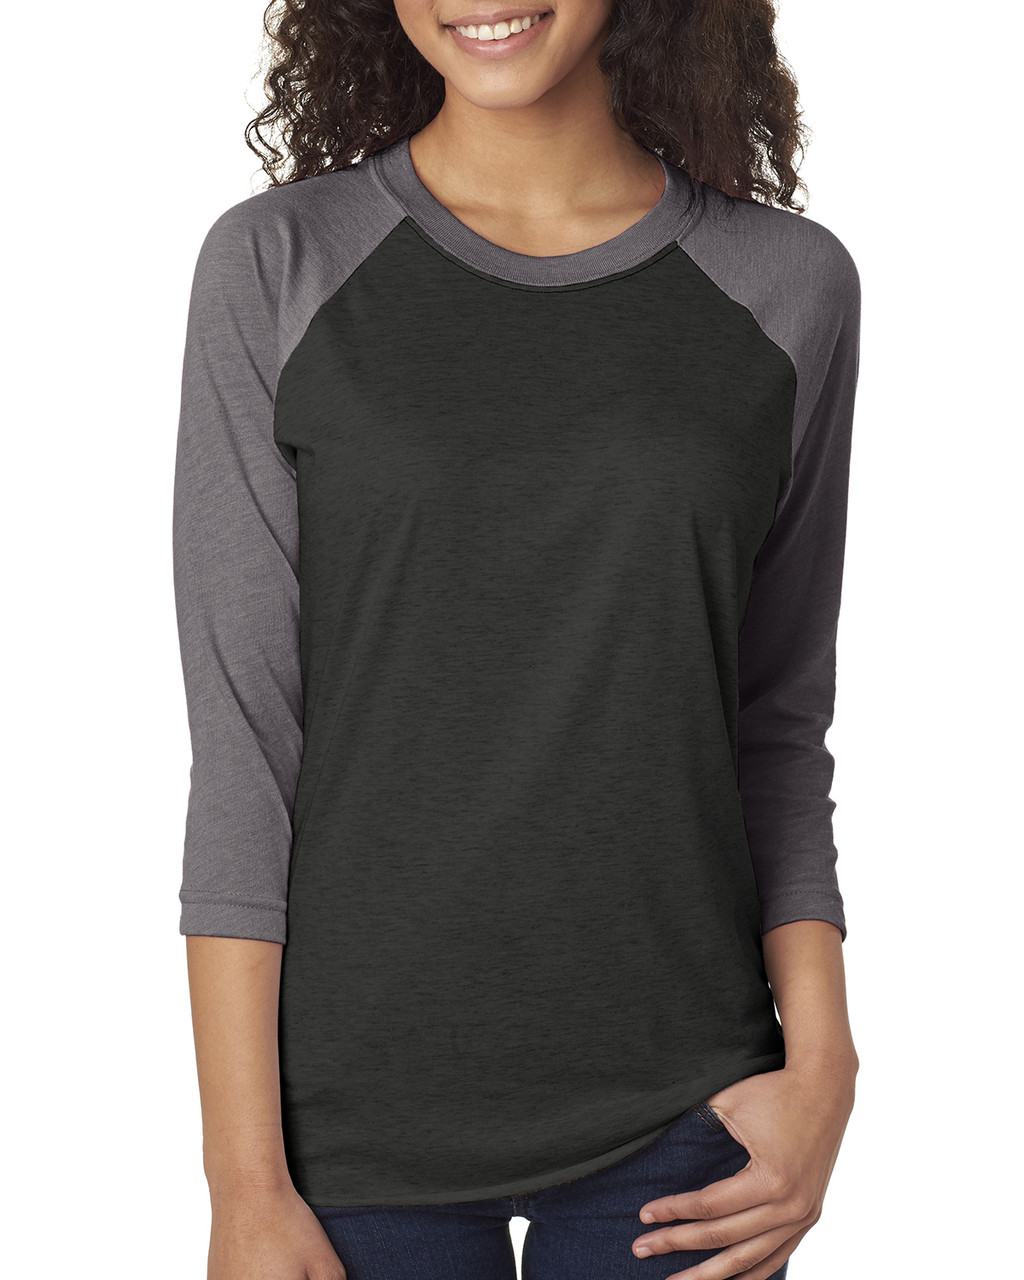 Heather/Vintage Black - 6051 Next Level Unisex Tri-Blend 3/4-Sleeve Raglan Tee | Blankclothing.ca